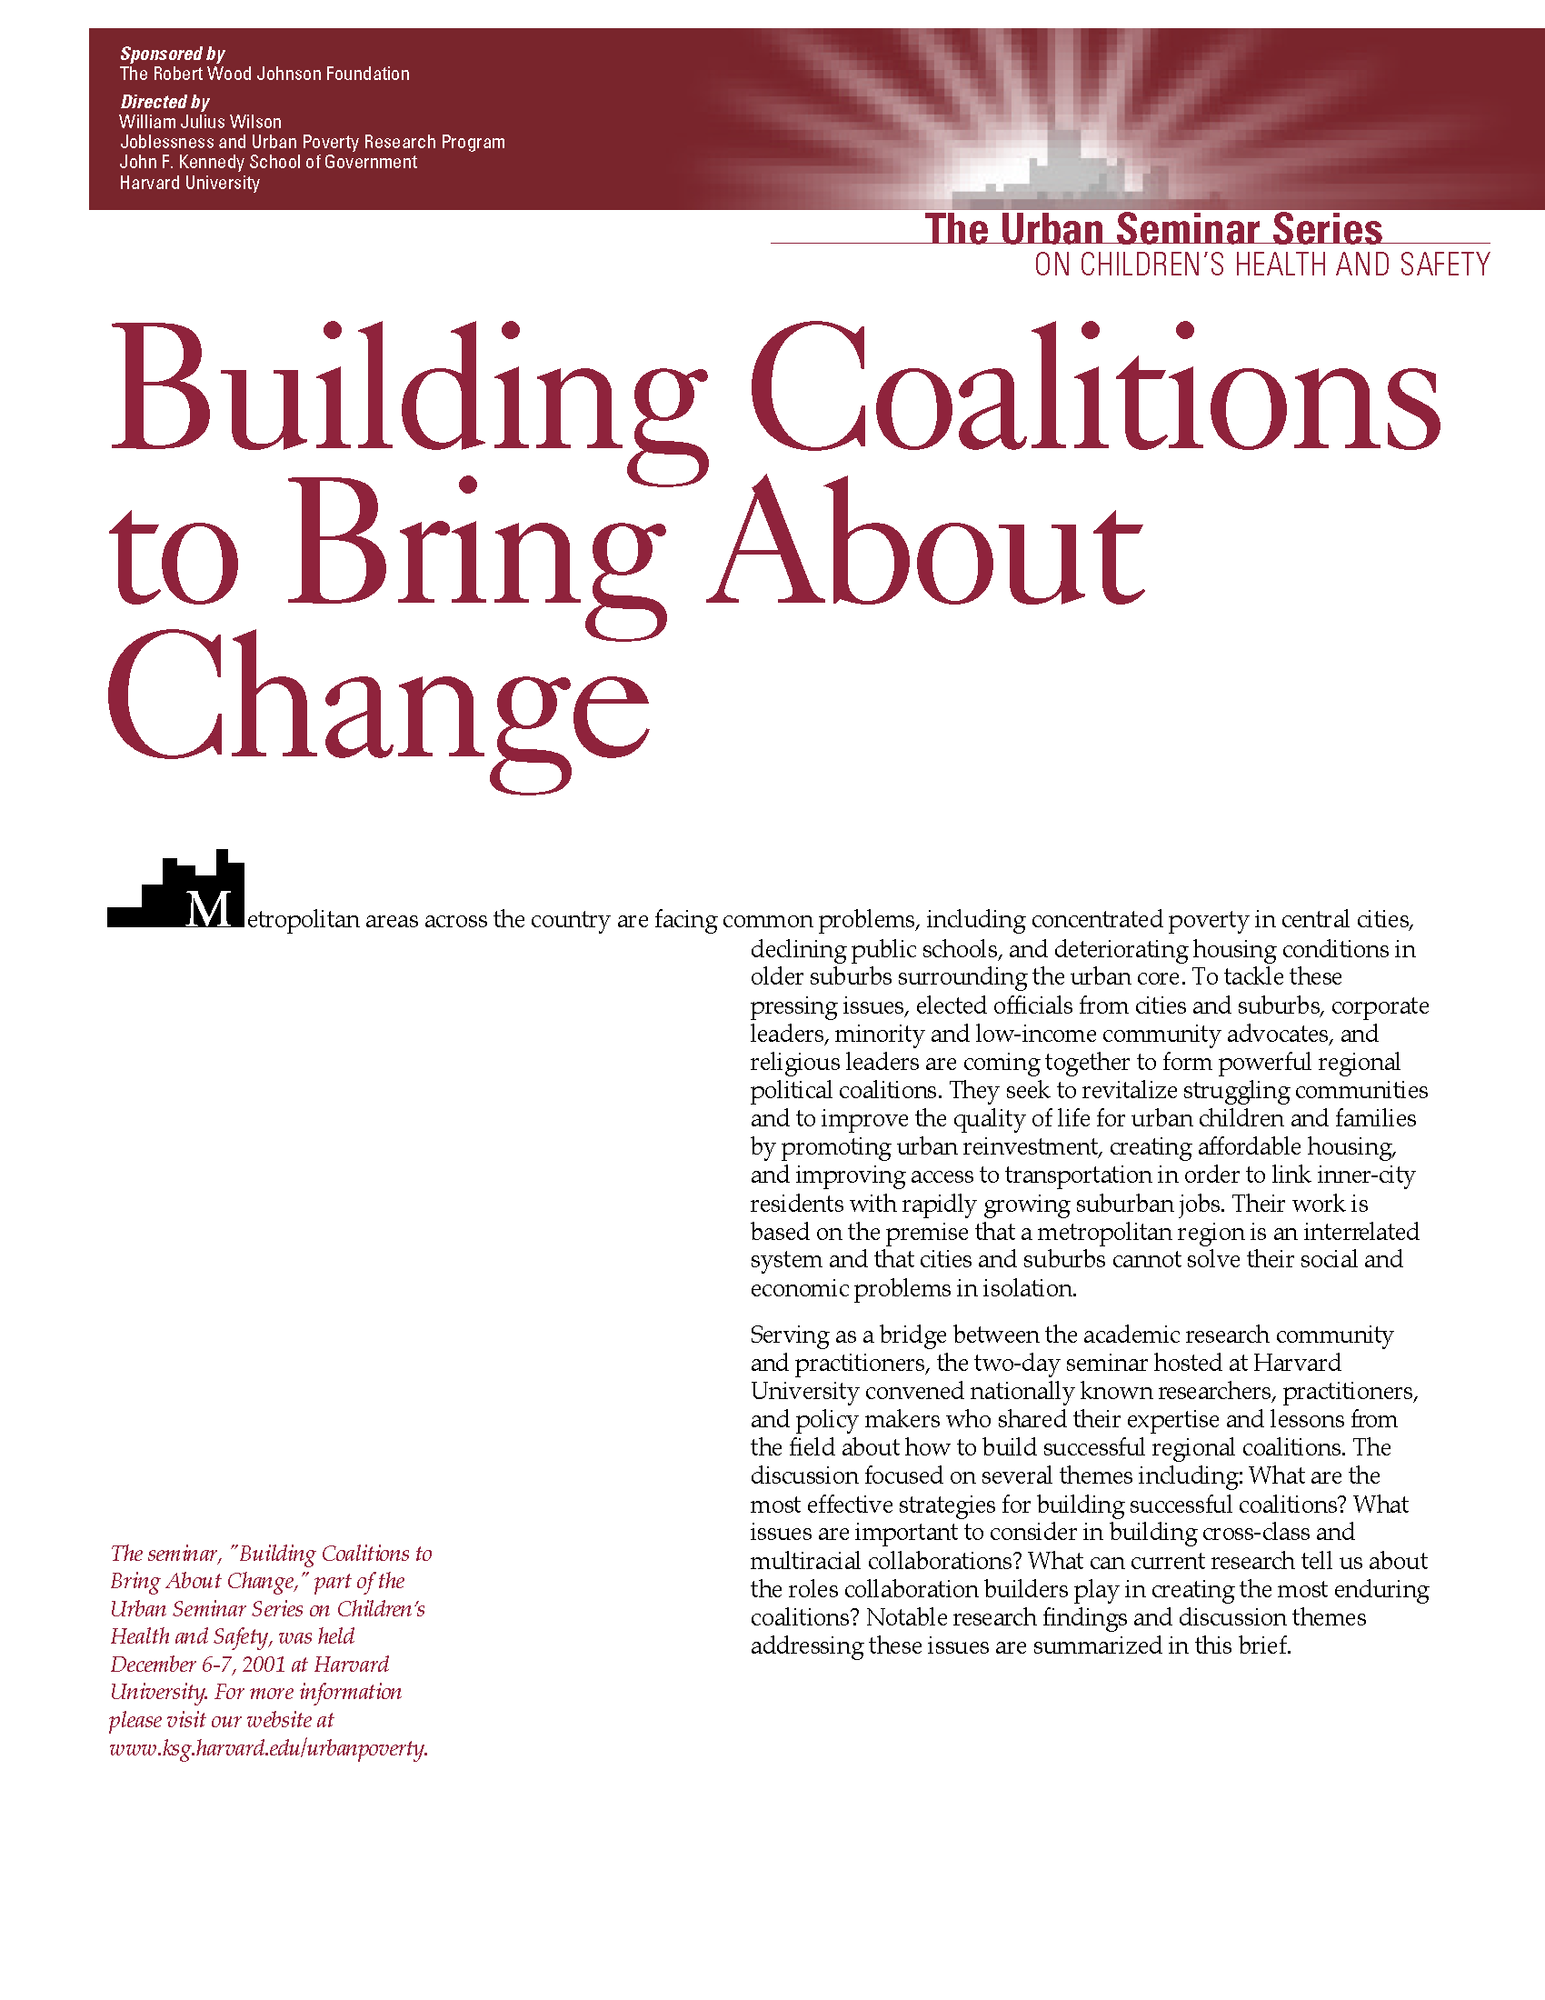 Building Coalitions to Bring About Change, December 2001